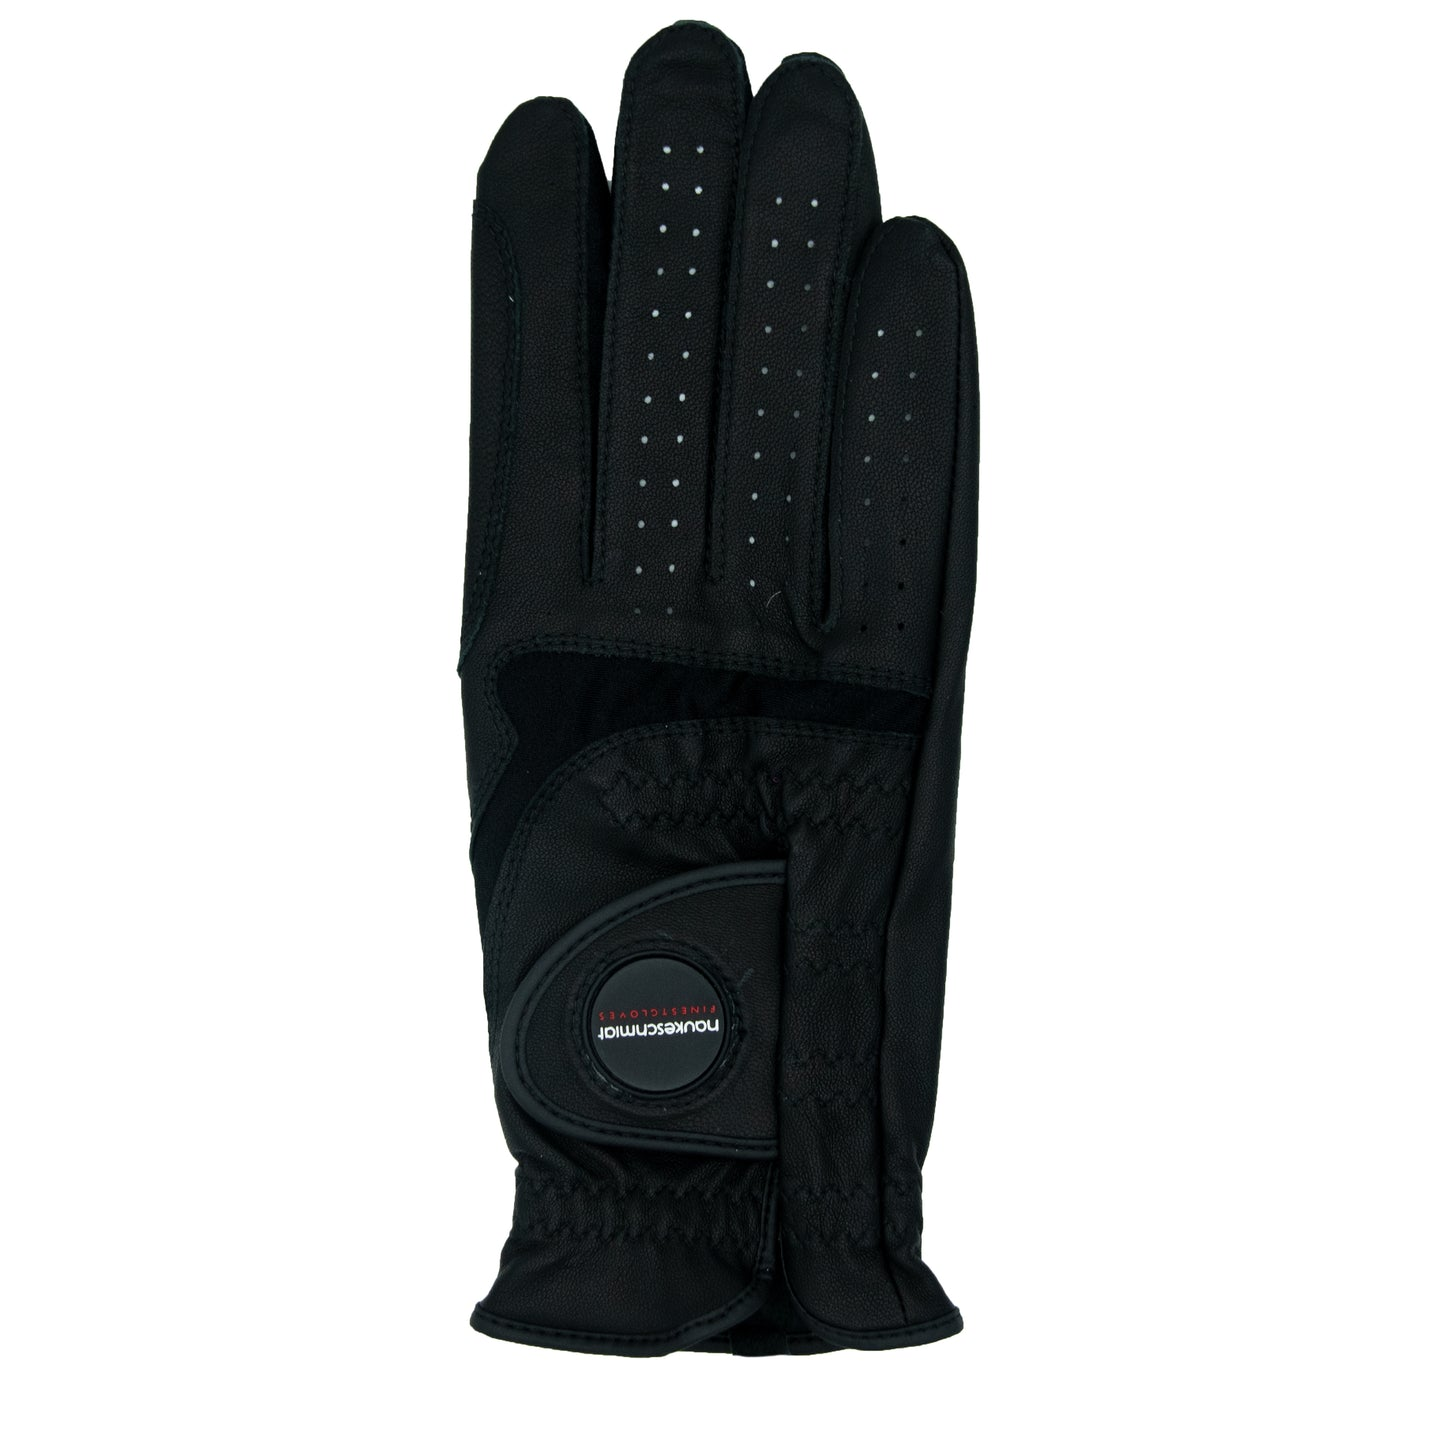 Hauke Schmidt Genuine Leather Gloves